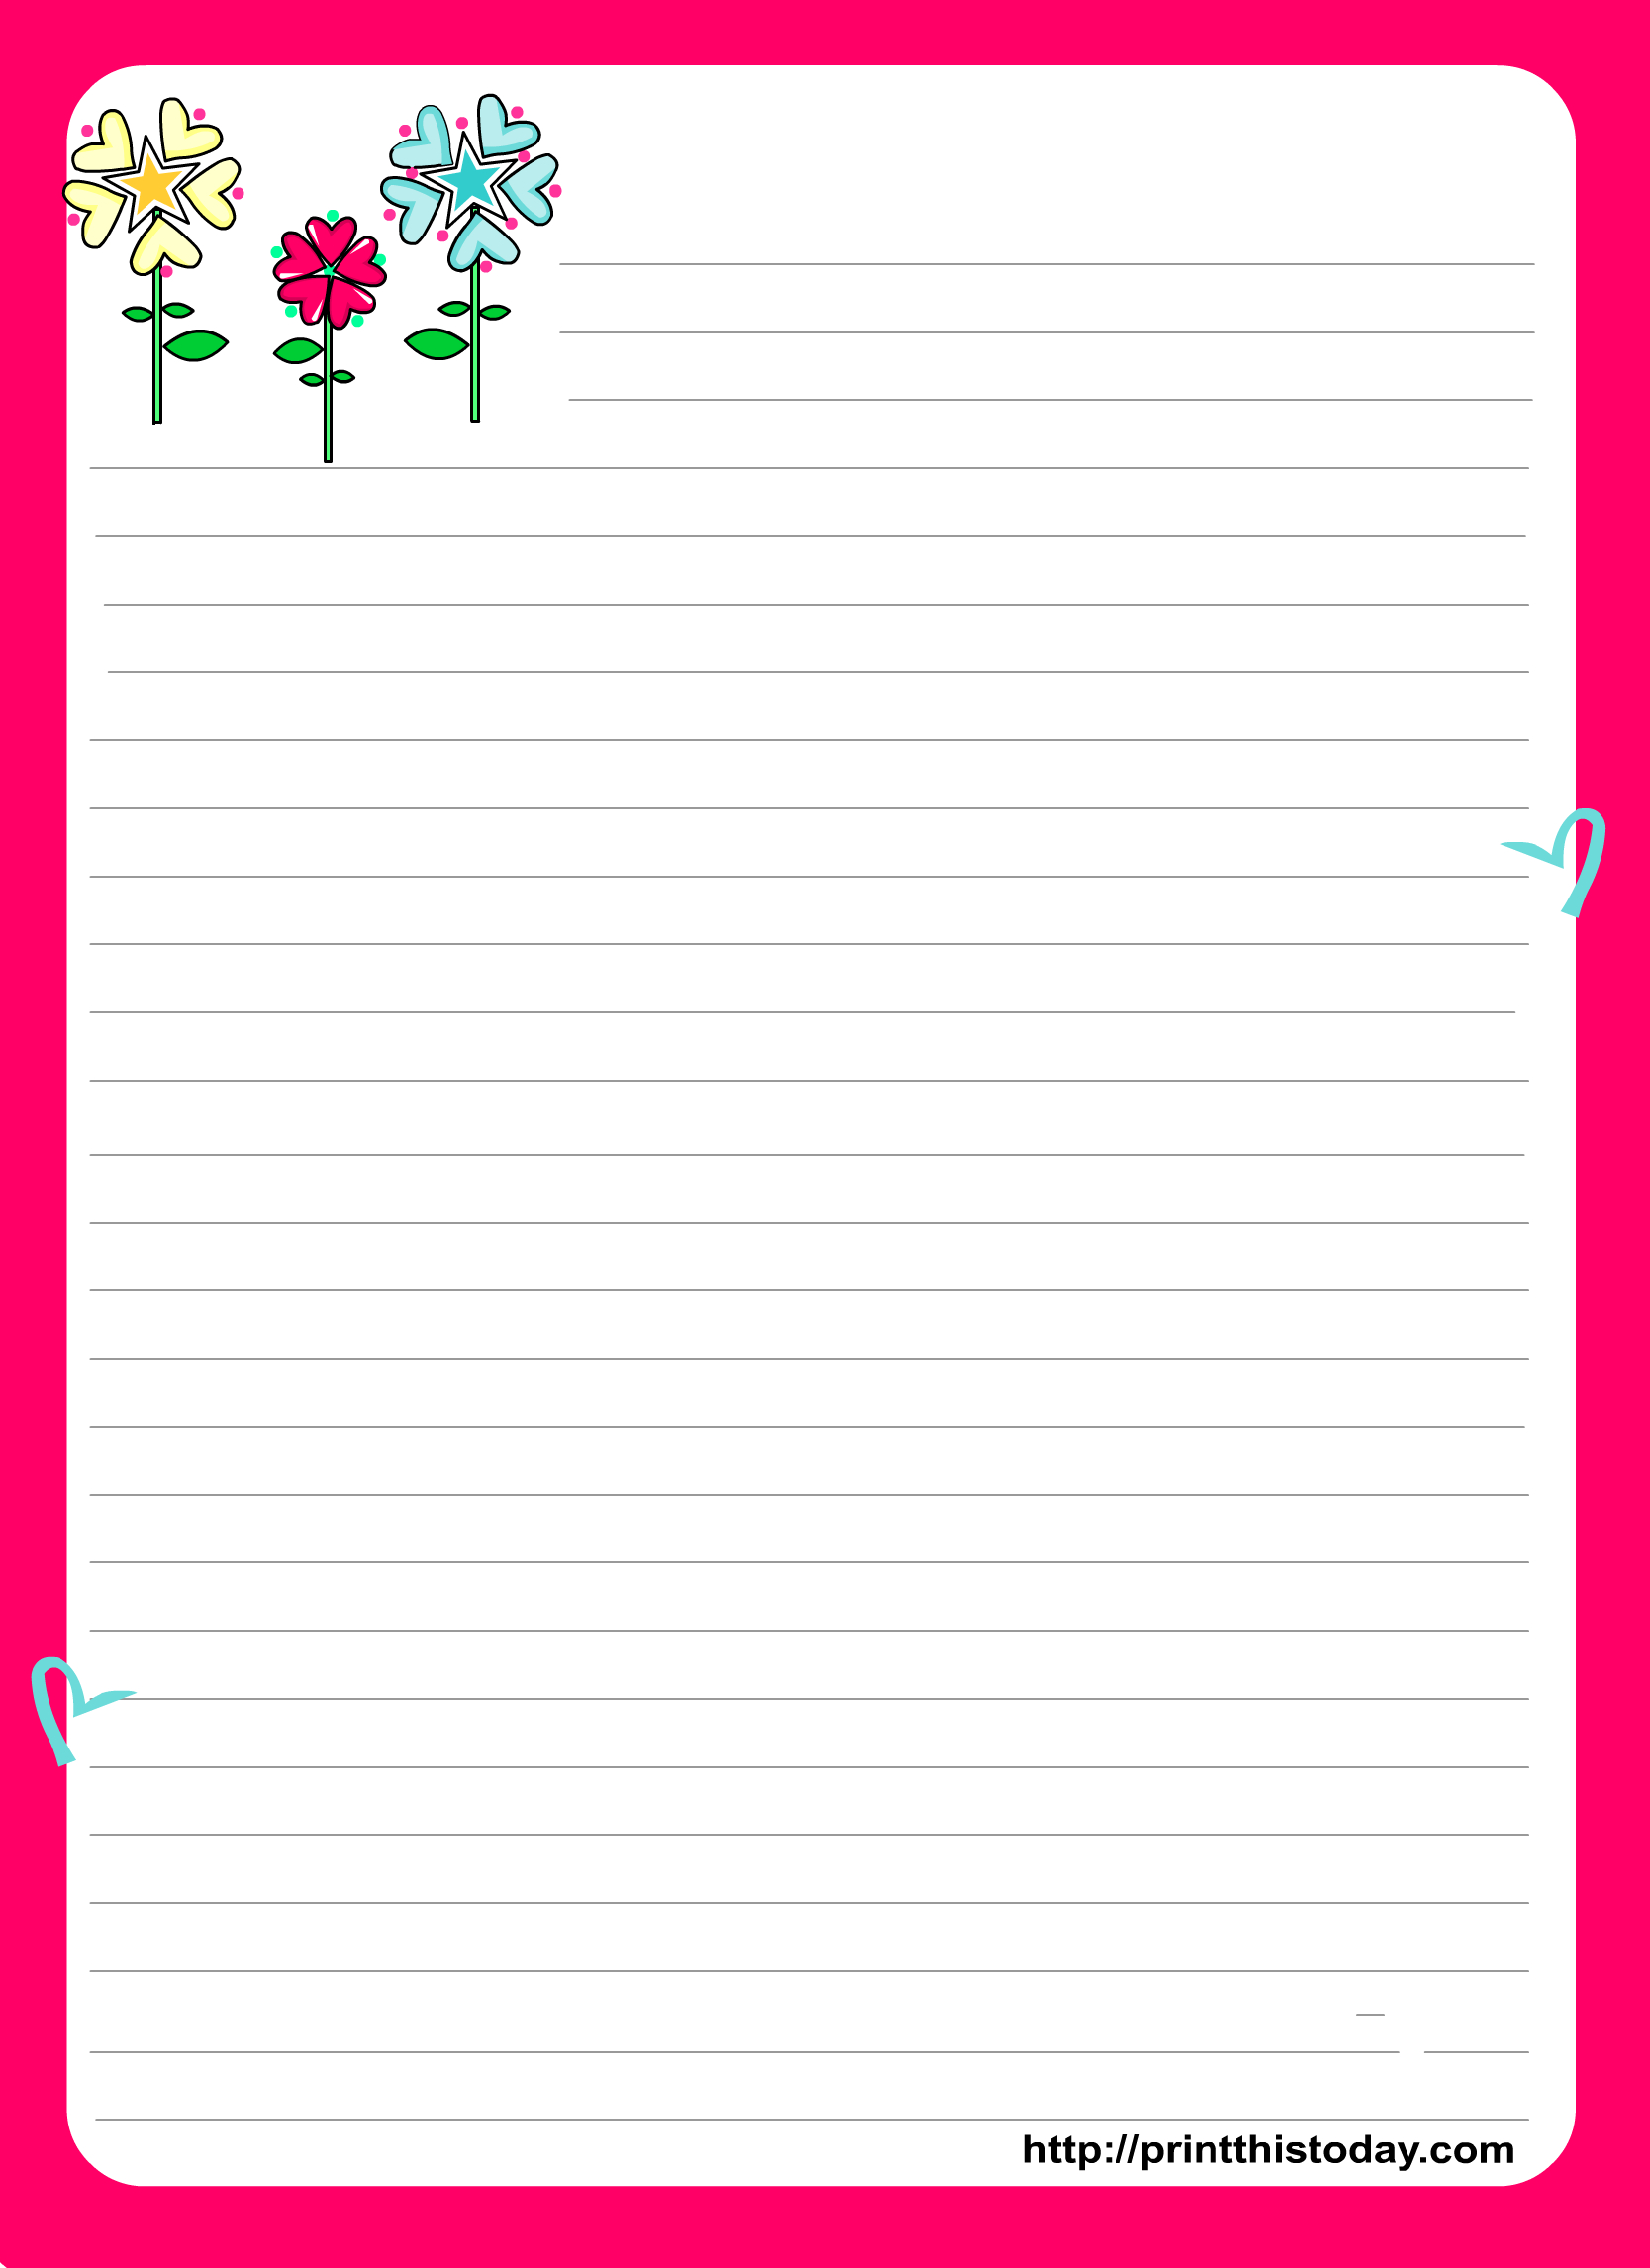 Love Letter Pad Stationery | Stationery | Free Printable Stationery - Free Printable Love Letter Paper